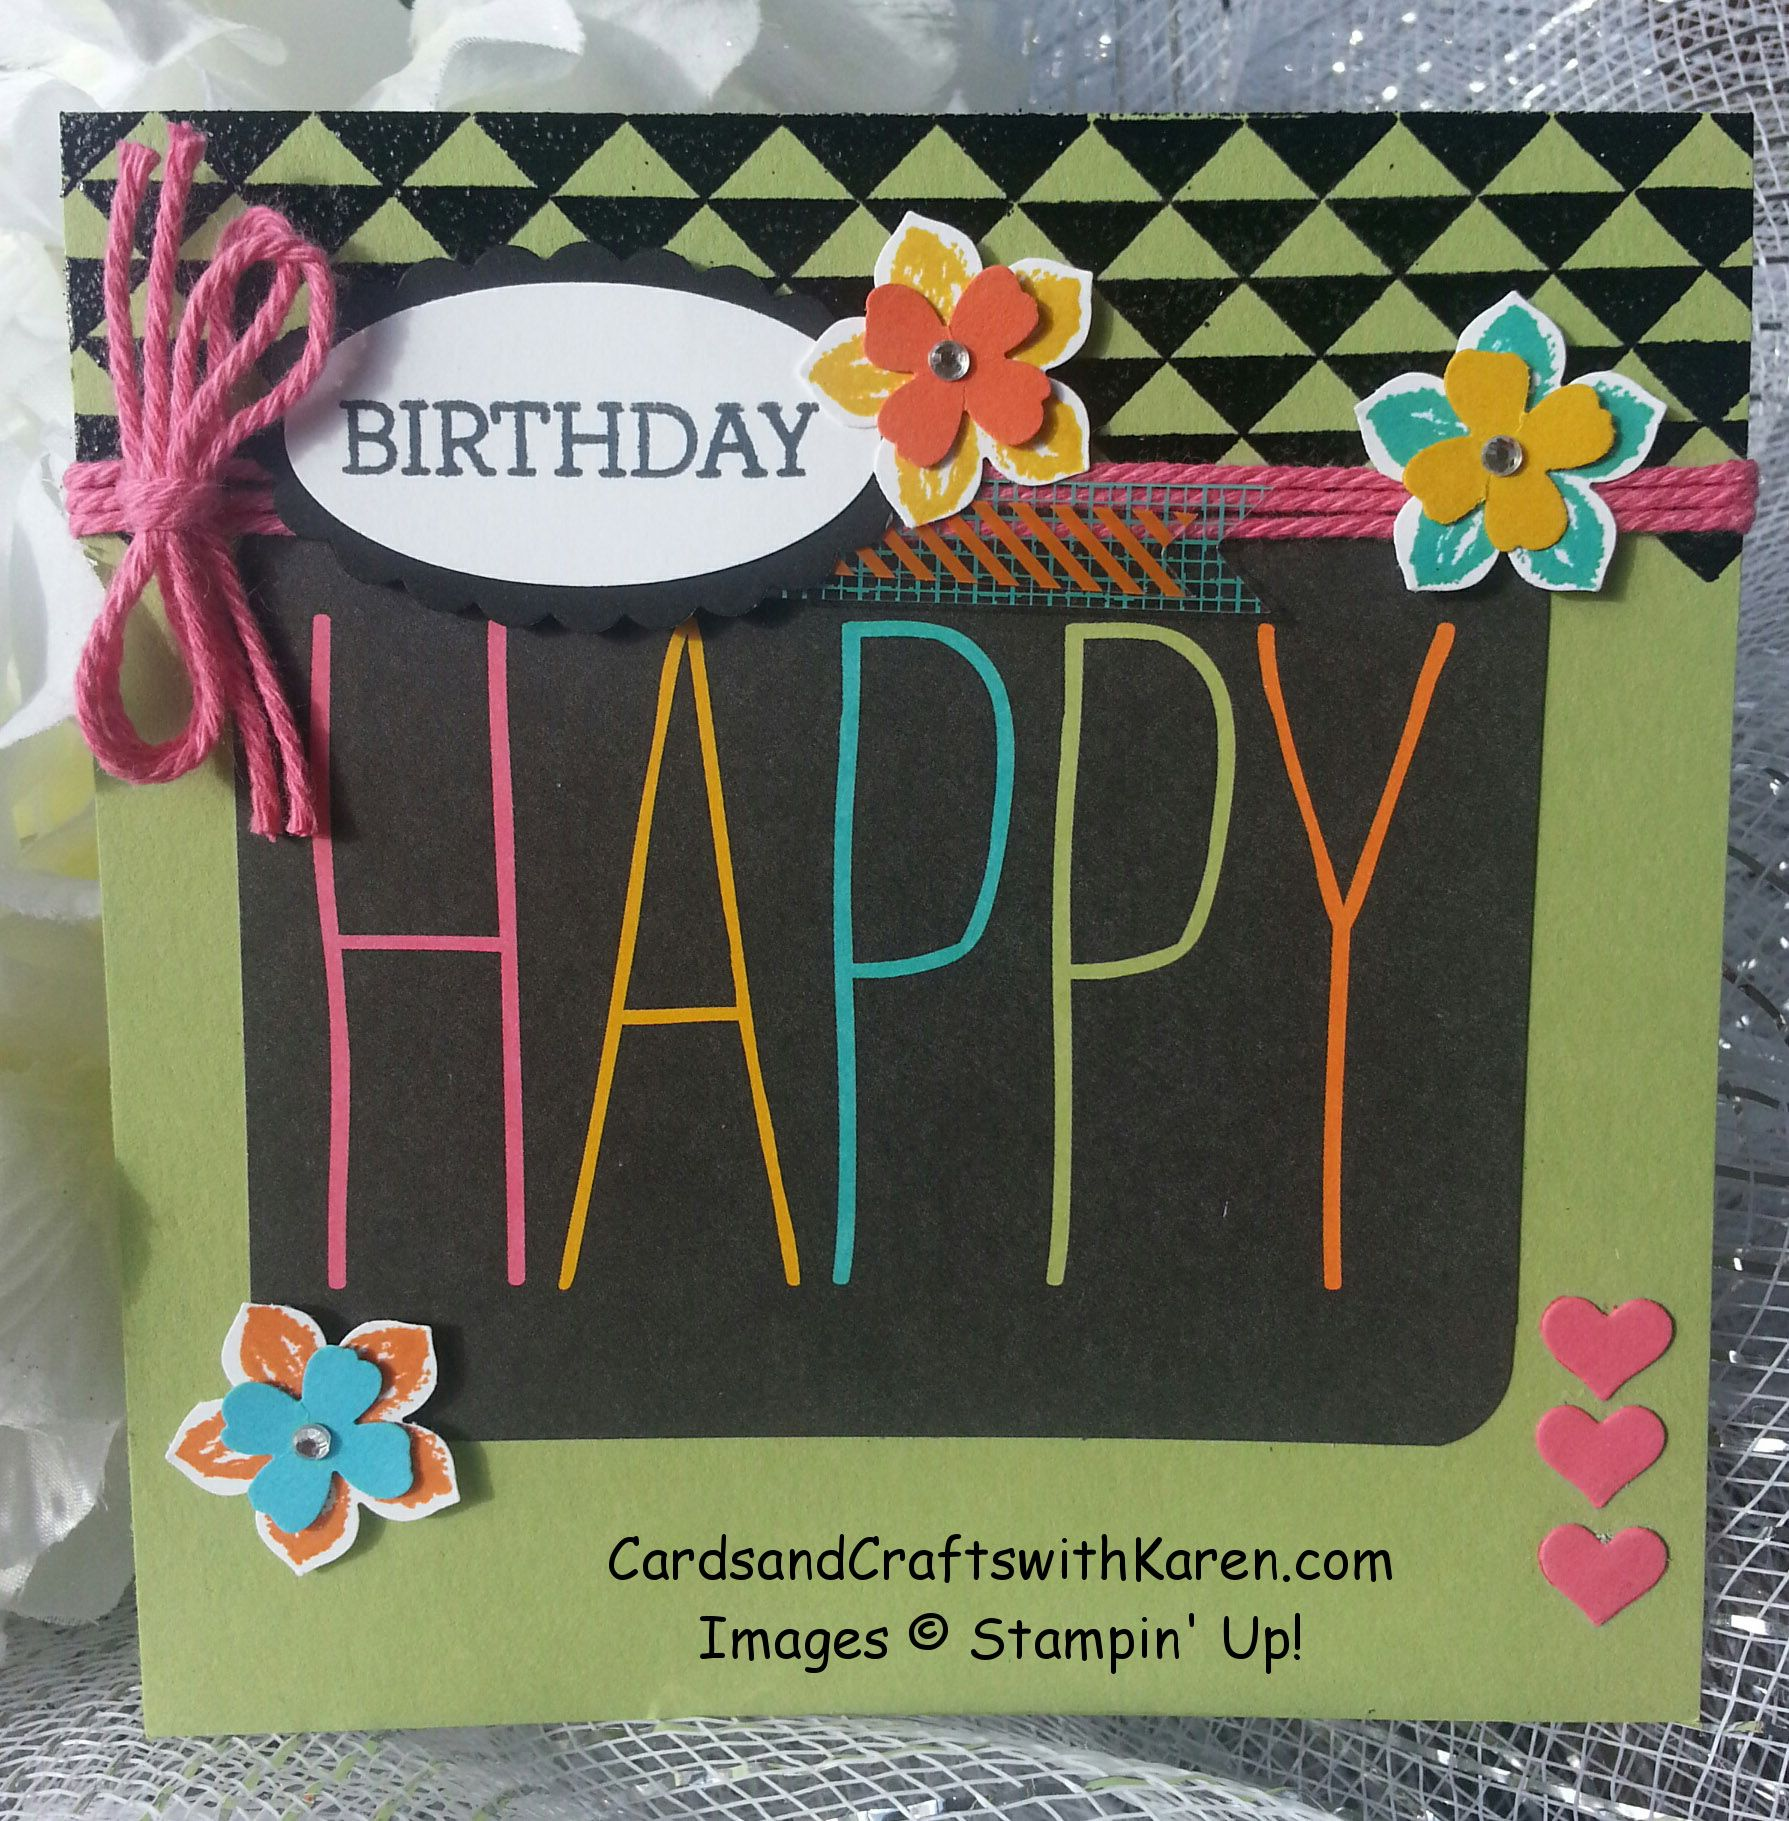 Pcccs birthday card using everyday adventure project life card